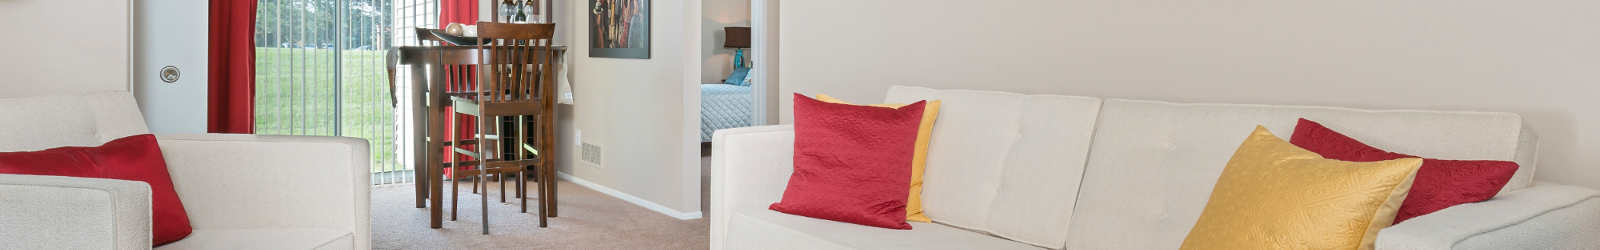 Contact Clinton Place Apartments about luxury apartment community living in Clinton Township, MI